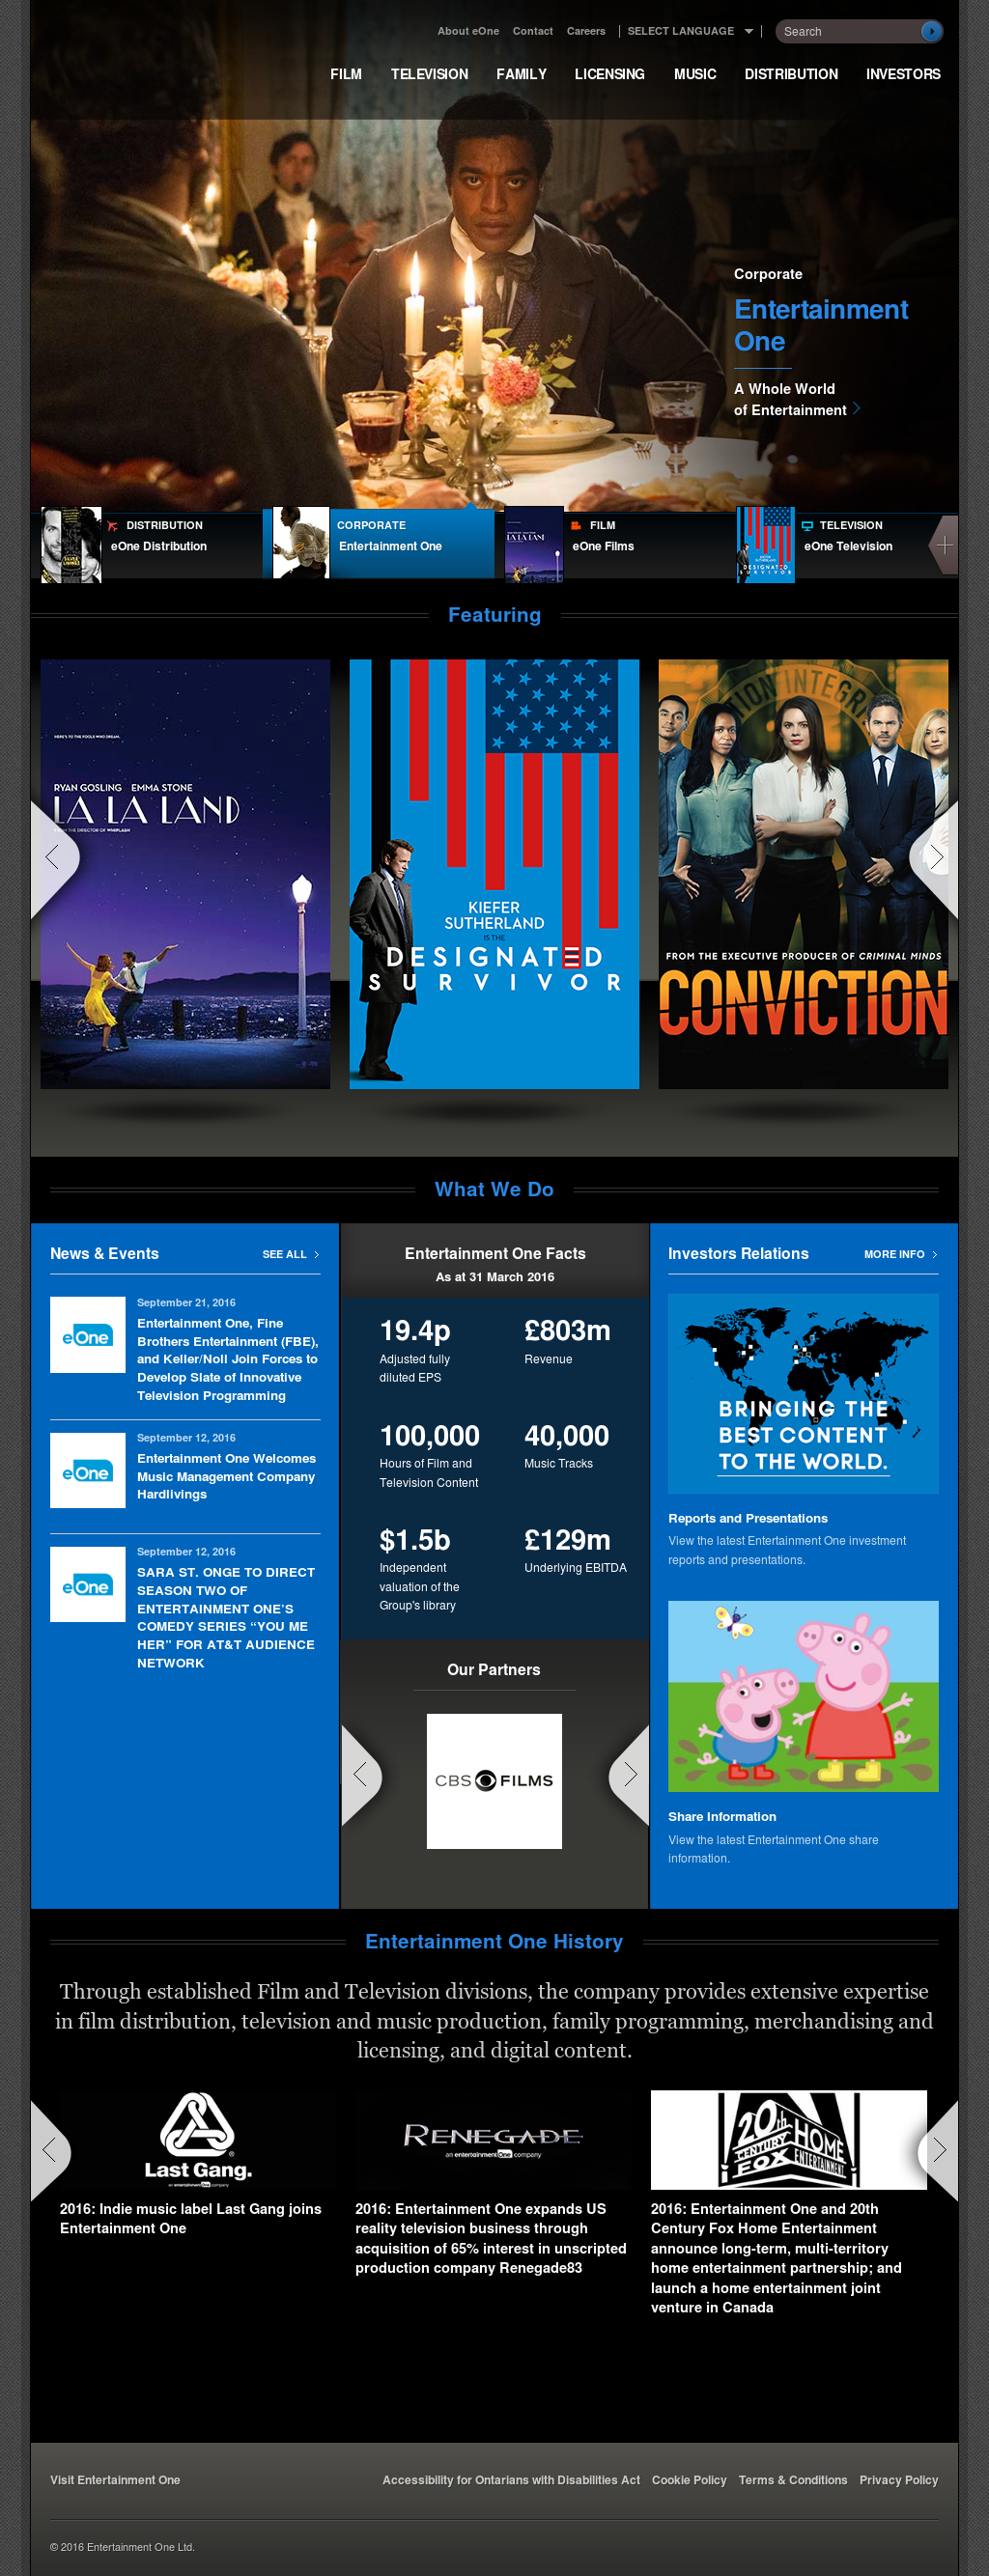 eOne Competitors, Revenue and Employees - Owler Company Profile